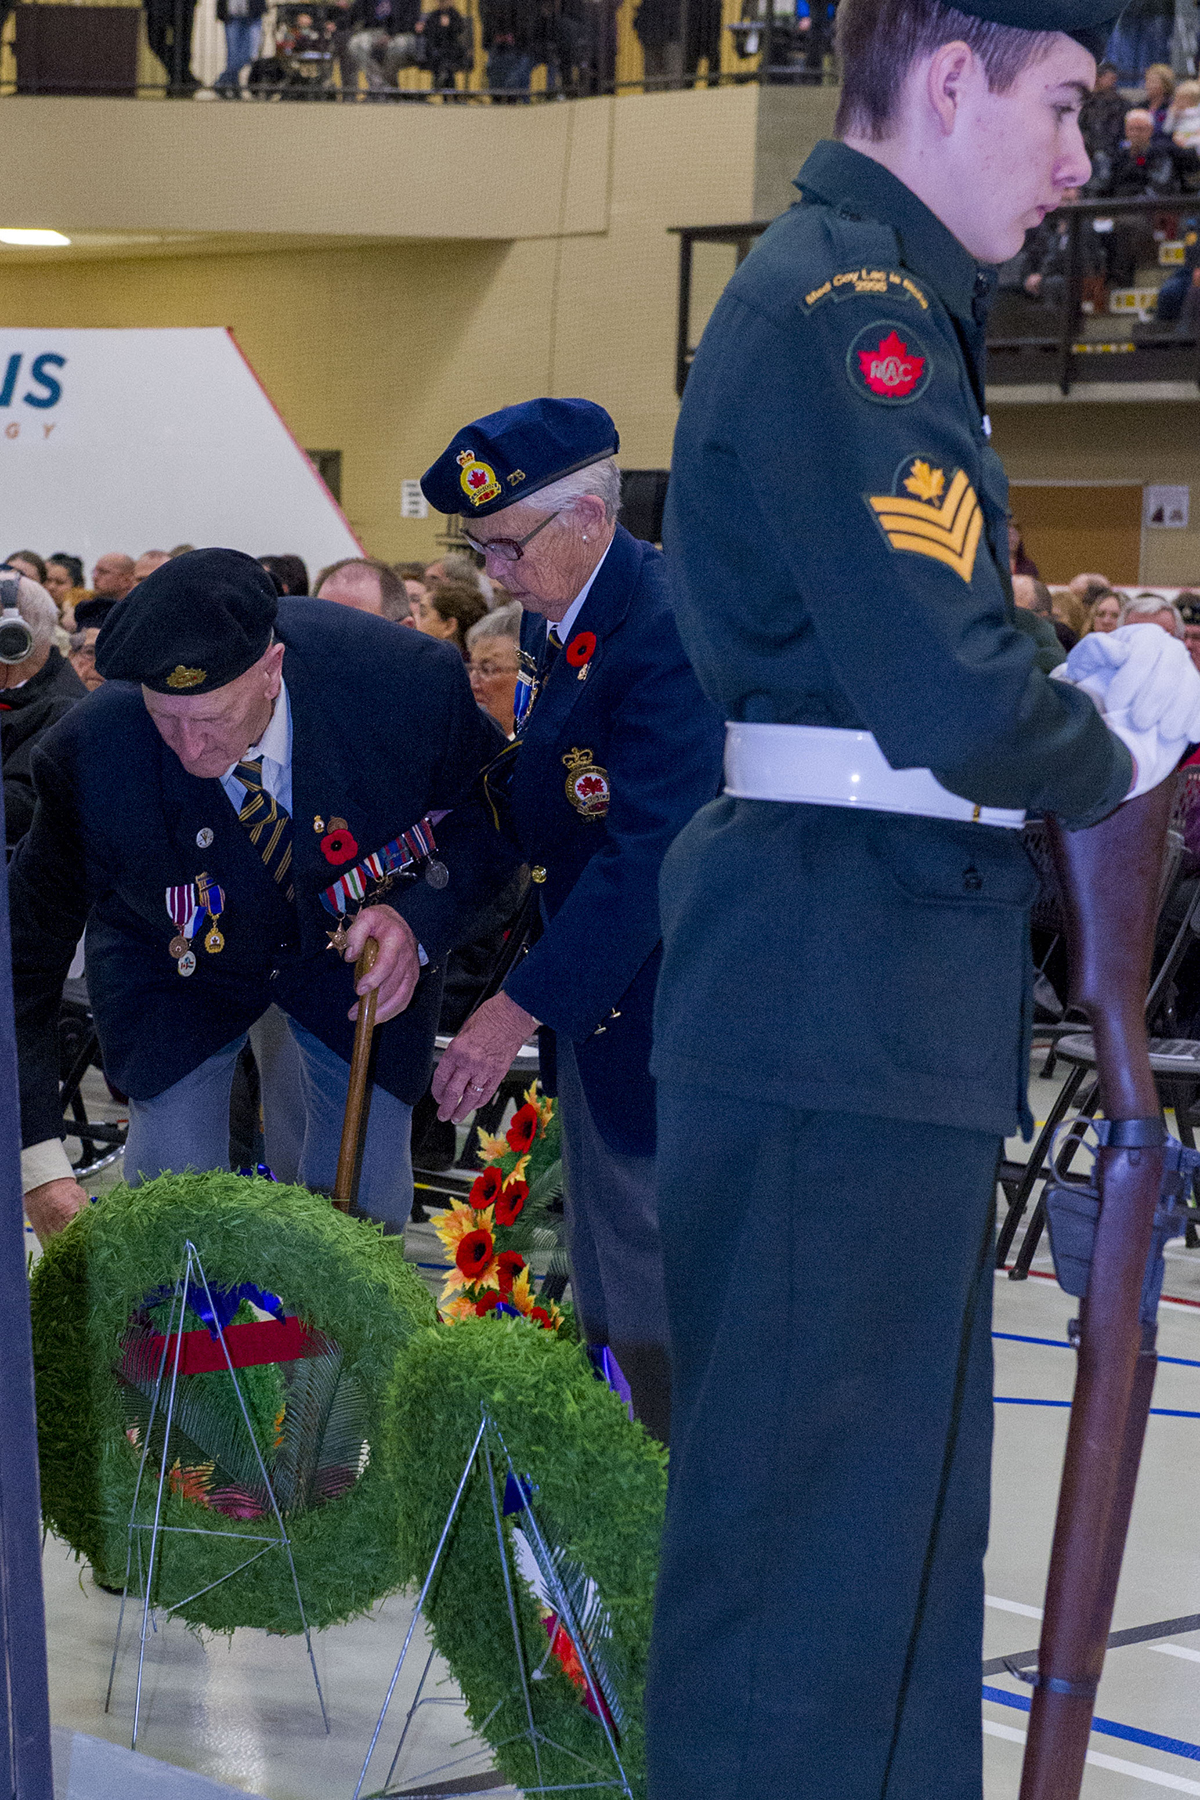 Second World War veteran Glen Meyers (left) places a wreath in memory of a fallen comrade during the Remembrance Day ceremony held in Lac La Biche, Alberta, on November 11, 2015. PHOTO: Master Corporal Heather MacRae